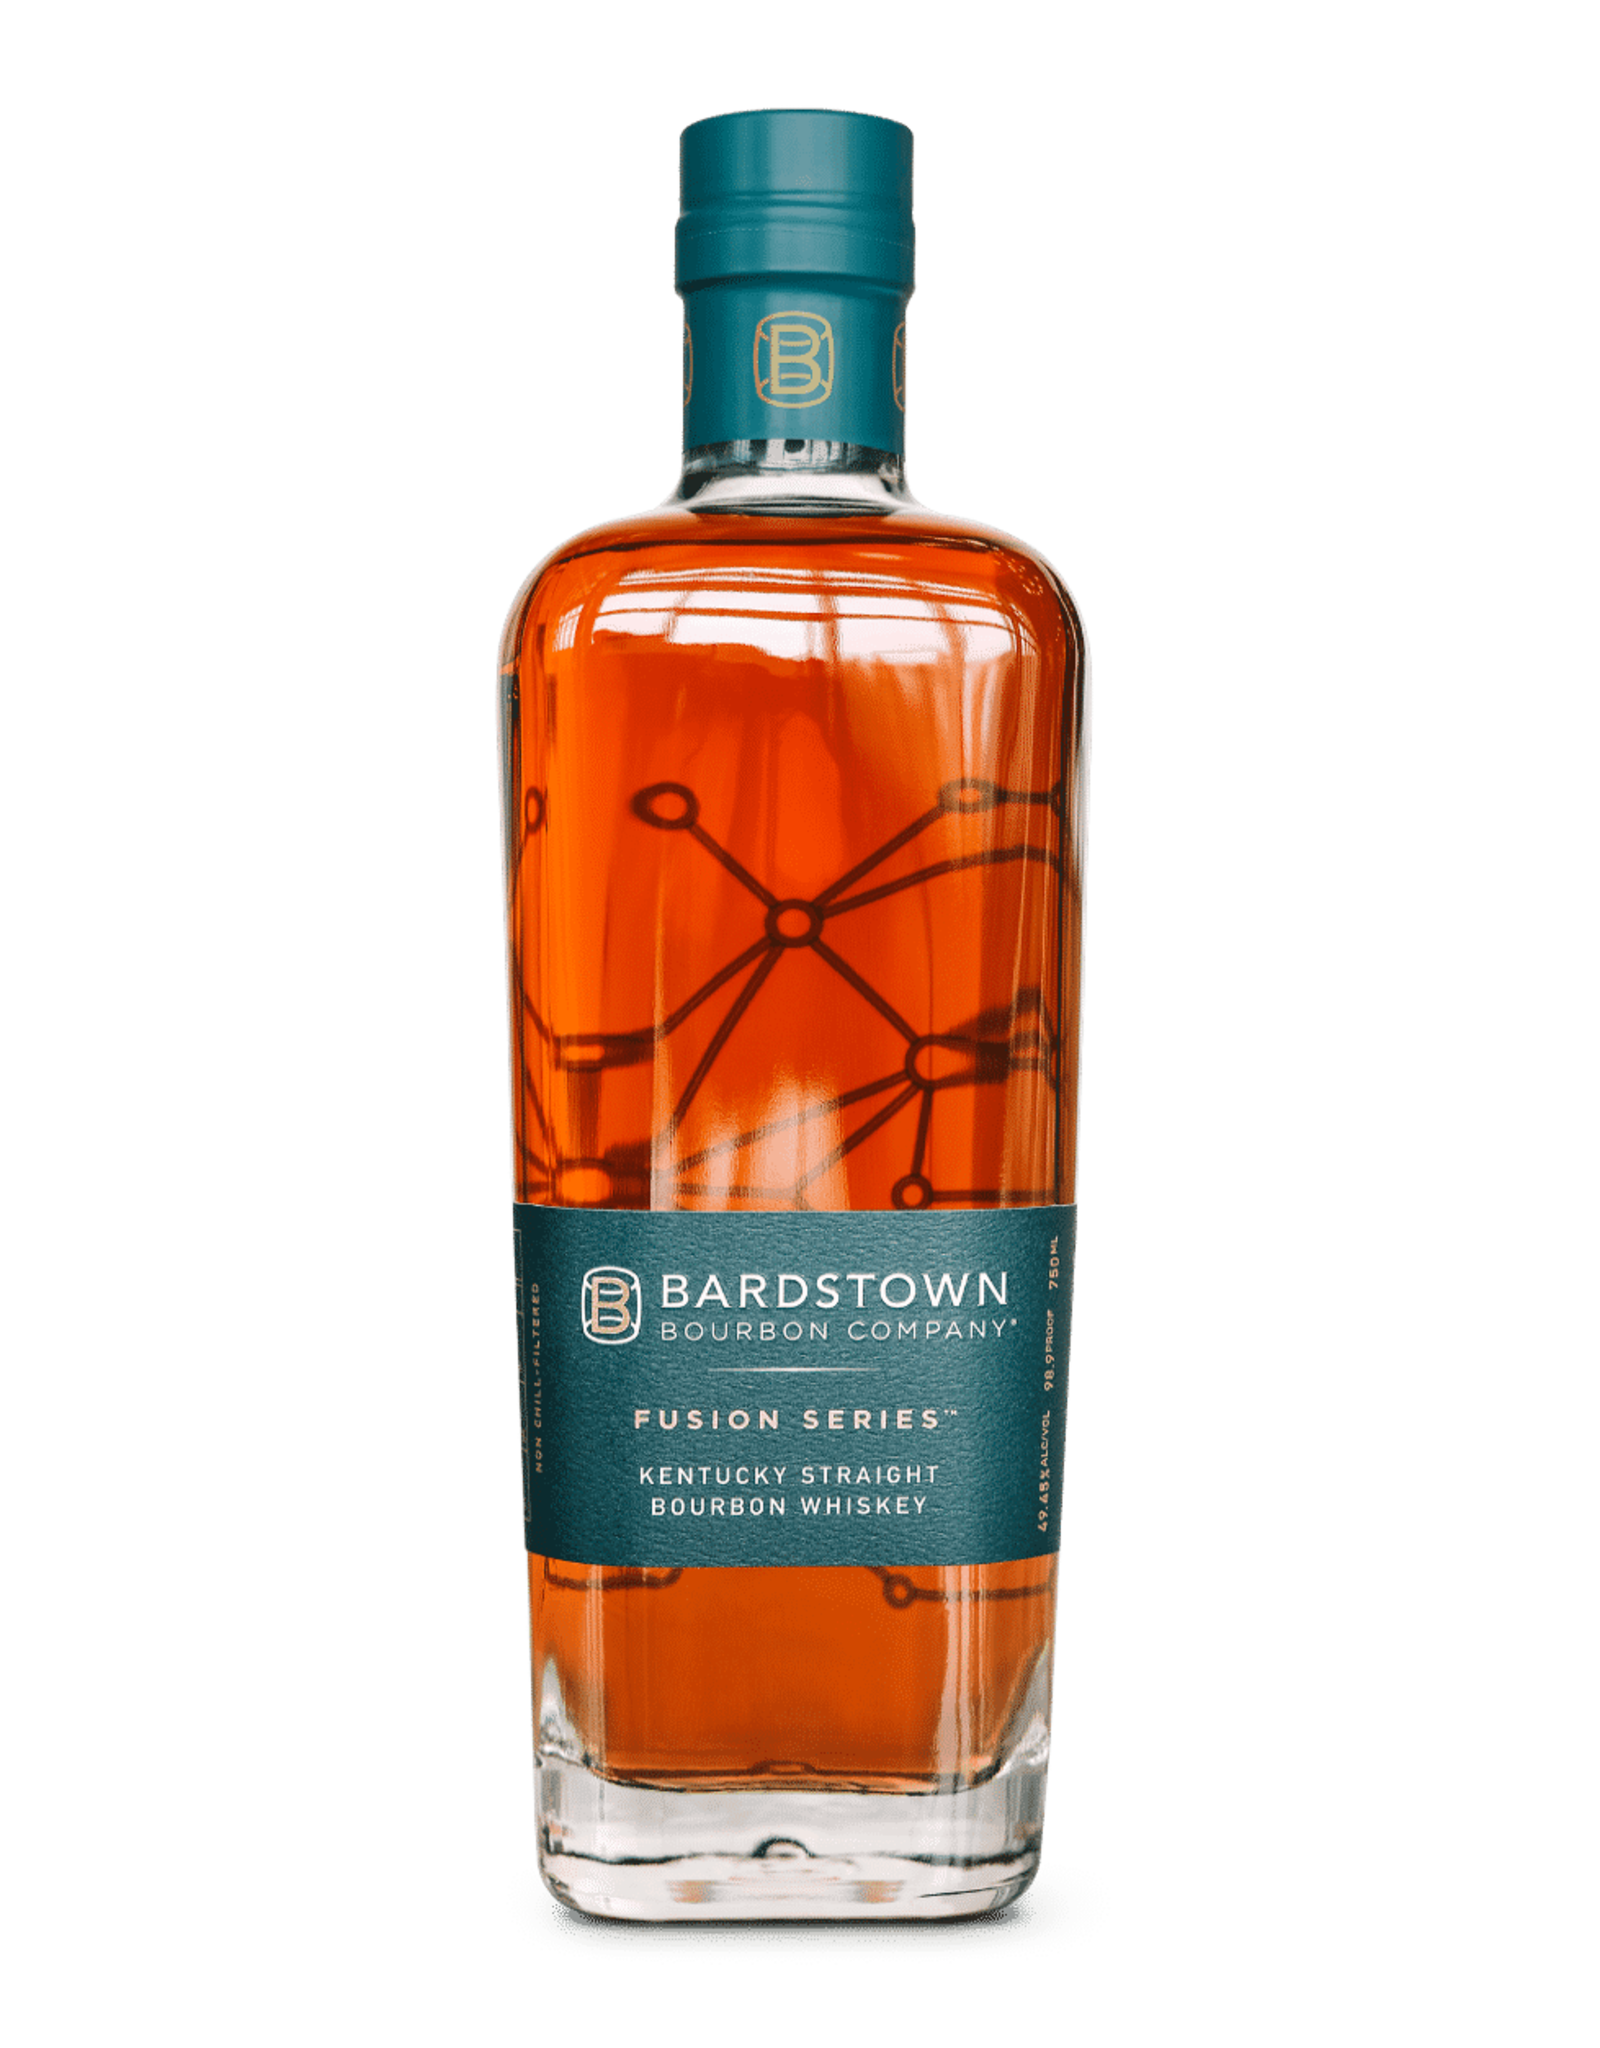 Bardstown Bourbon Company Fusion Series